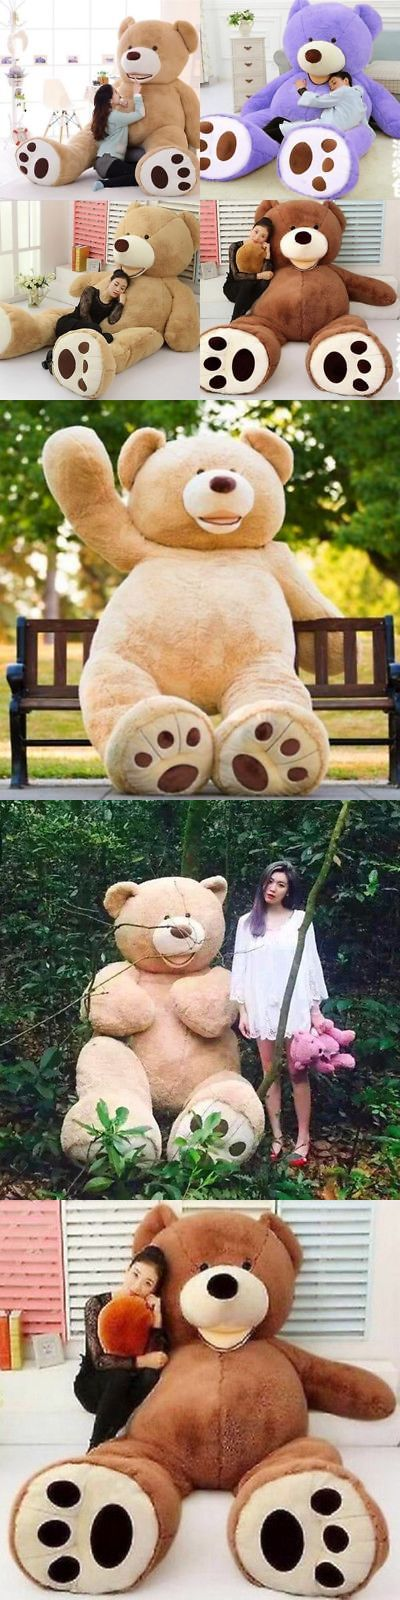 Plush Baby Toys 131084: 80Cm~340Cm Giant Big Cute Plush Stuffed Teddy Bear Soft 100% Cotton Toy Gift -> BUY IT NOW ONLY: $59.99 on eBay!